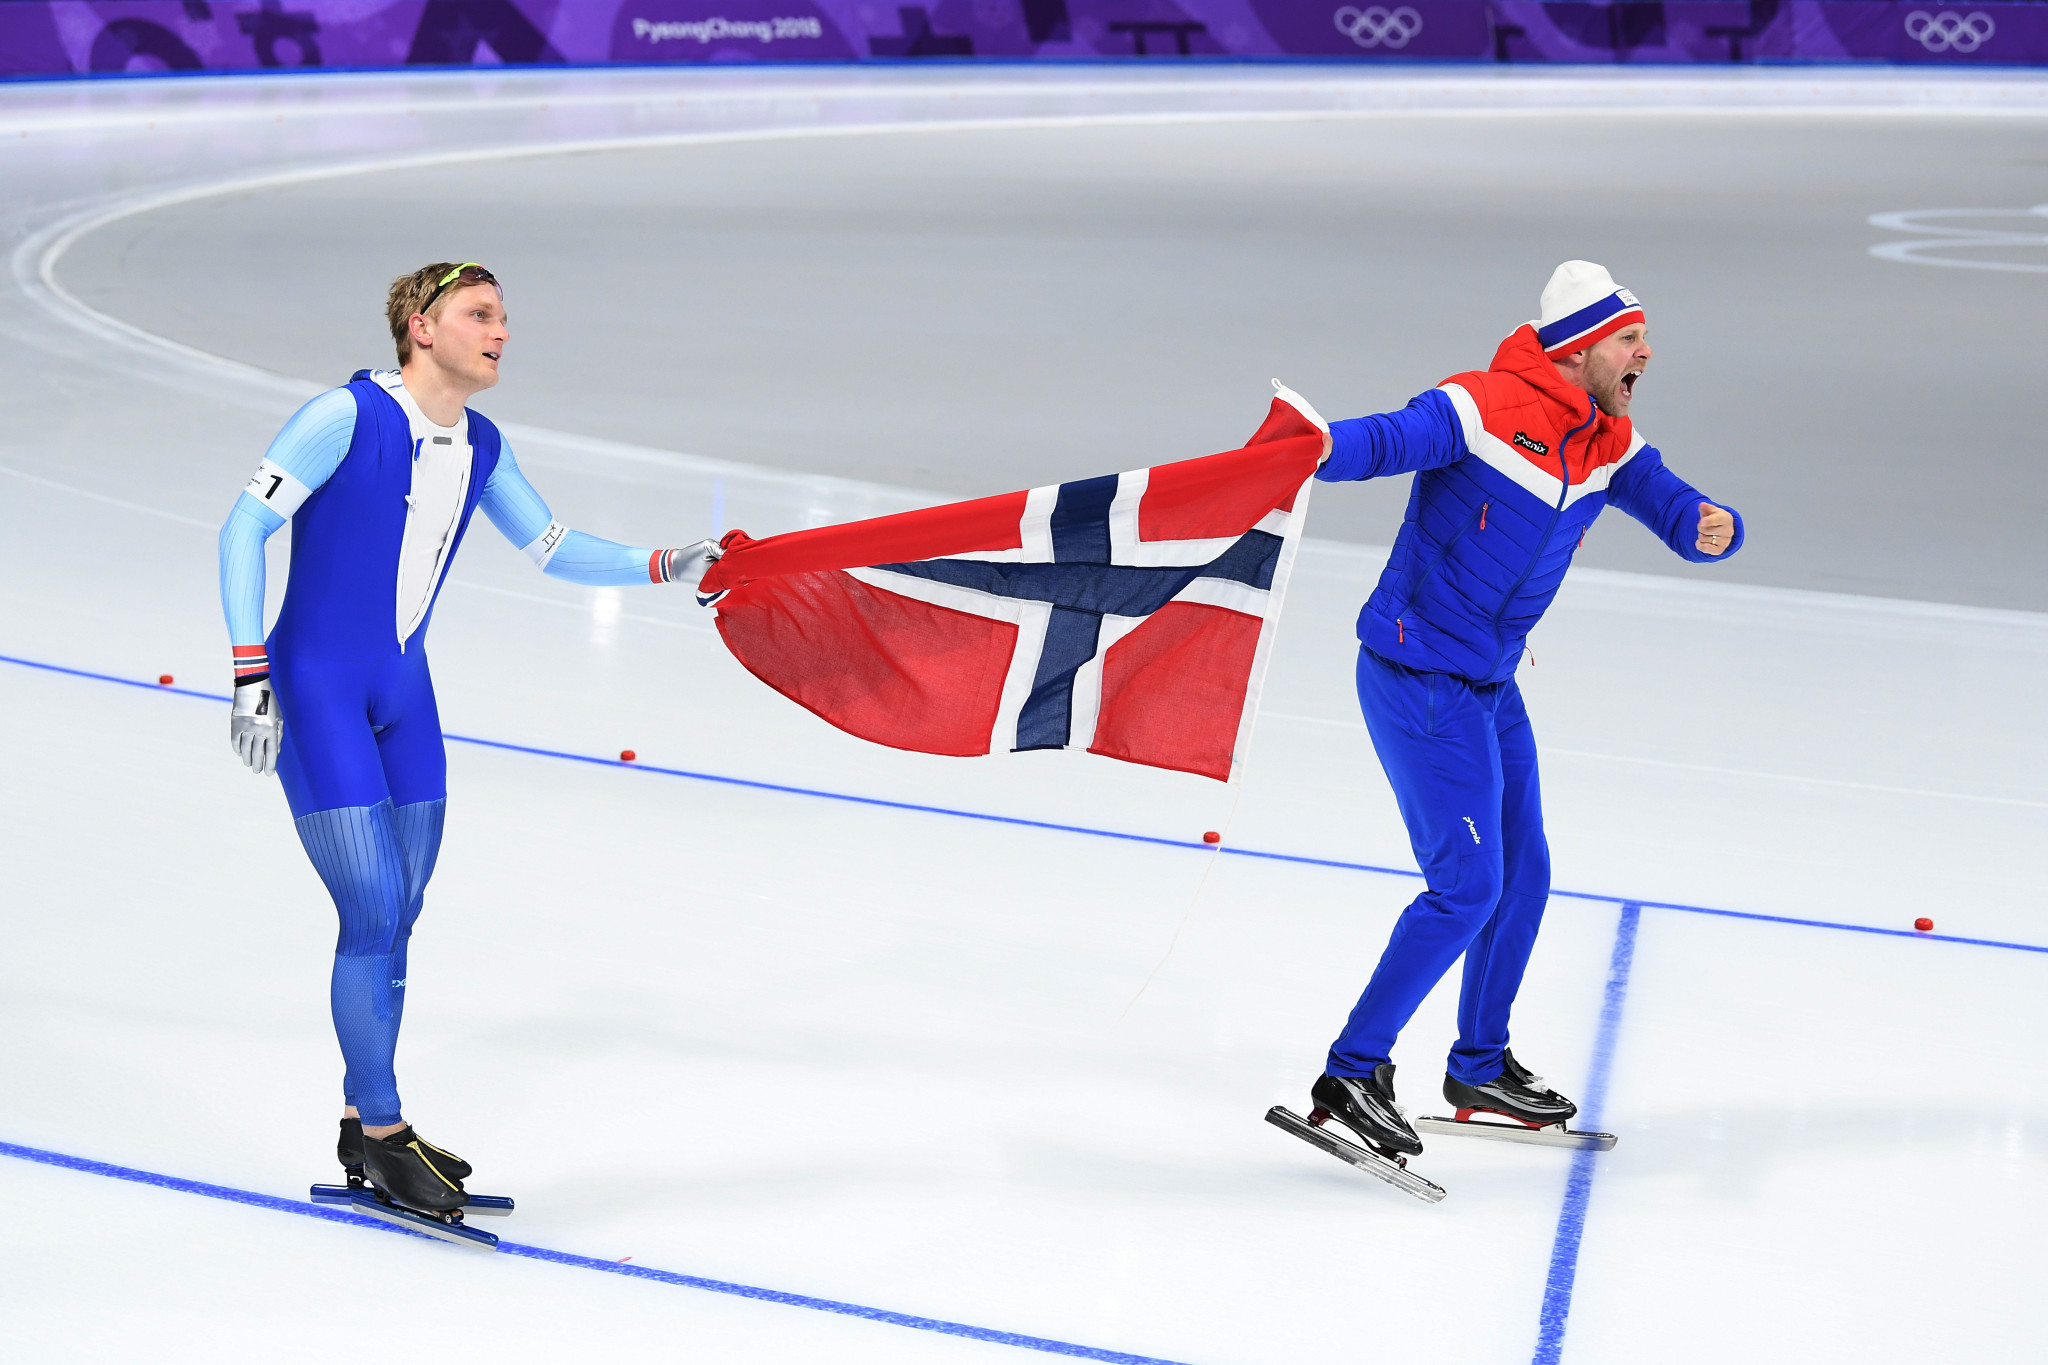 Norway enjoyed success in speed skating today at Pyeongchang 2018 ©Getty Images